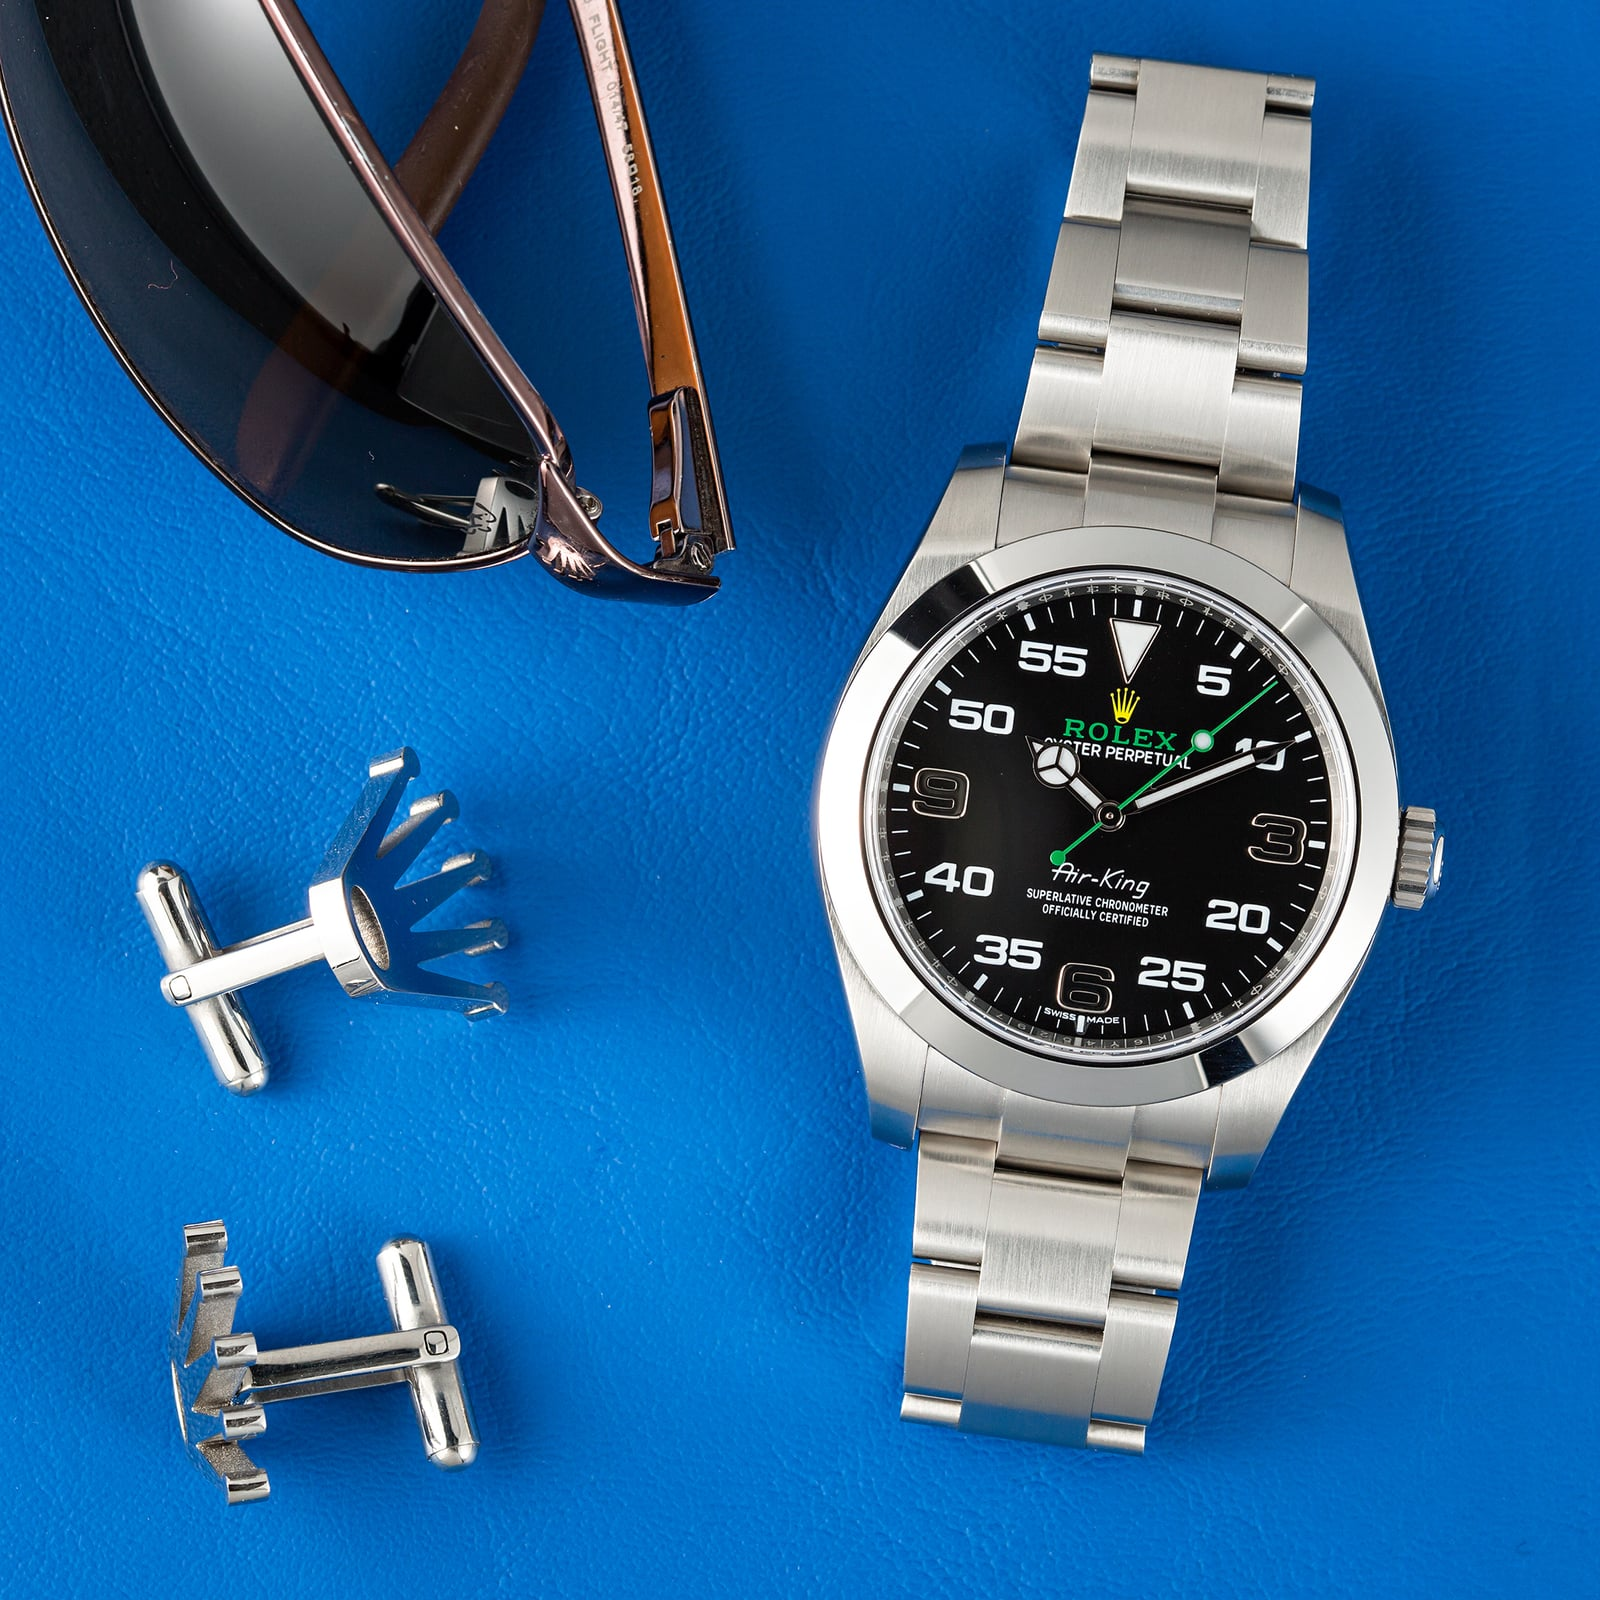 The Oystersteel copy watches have black dials.